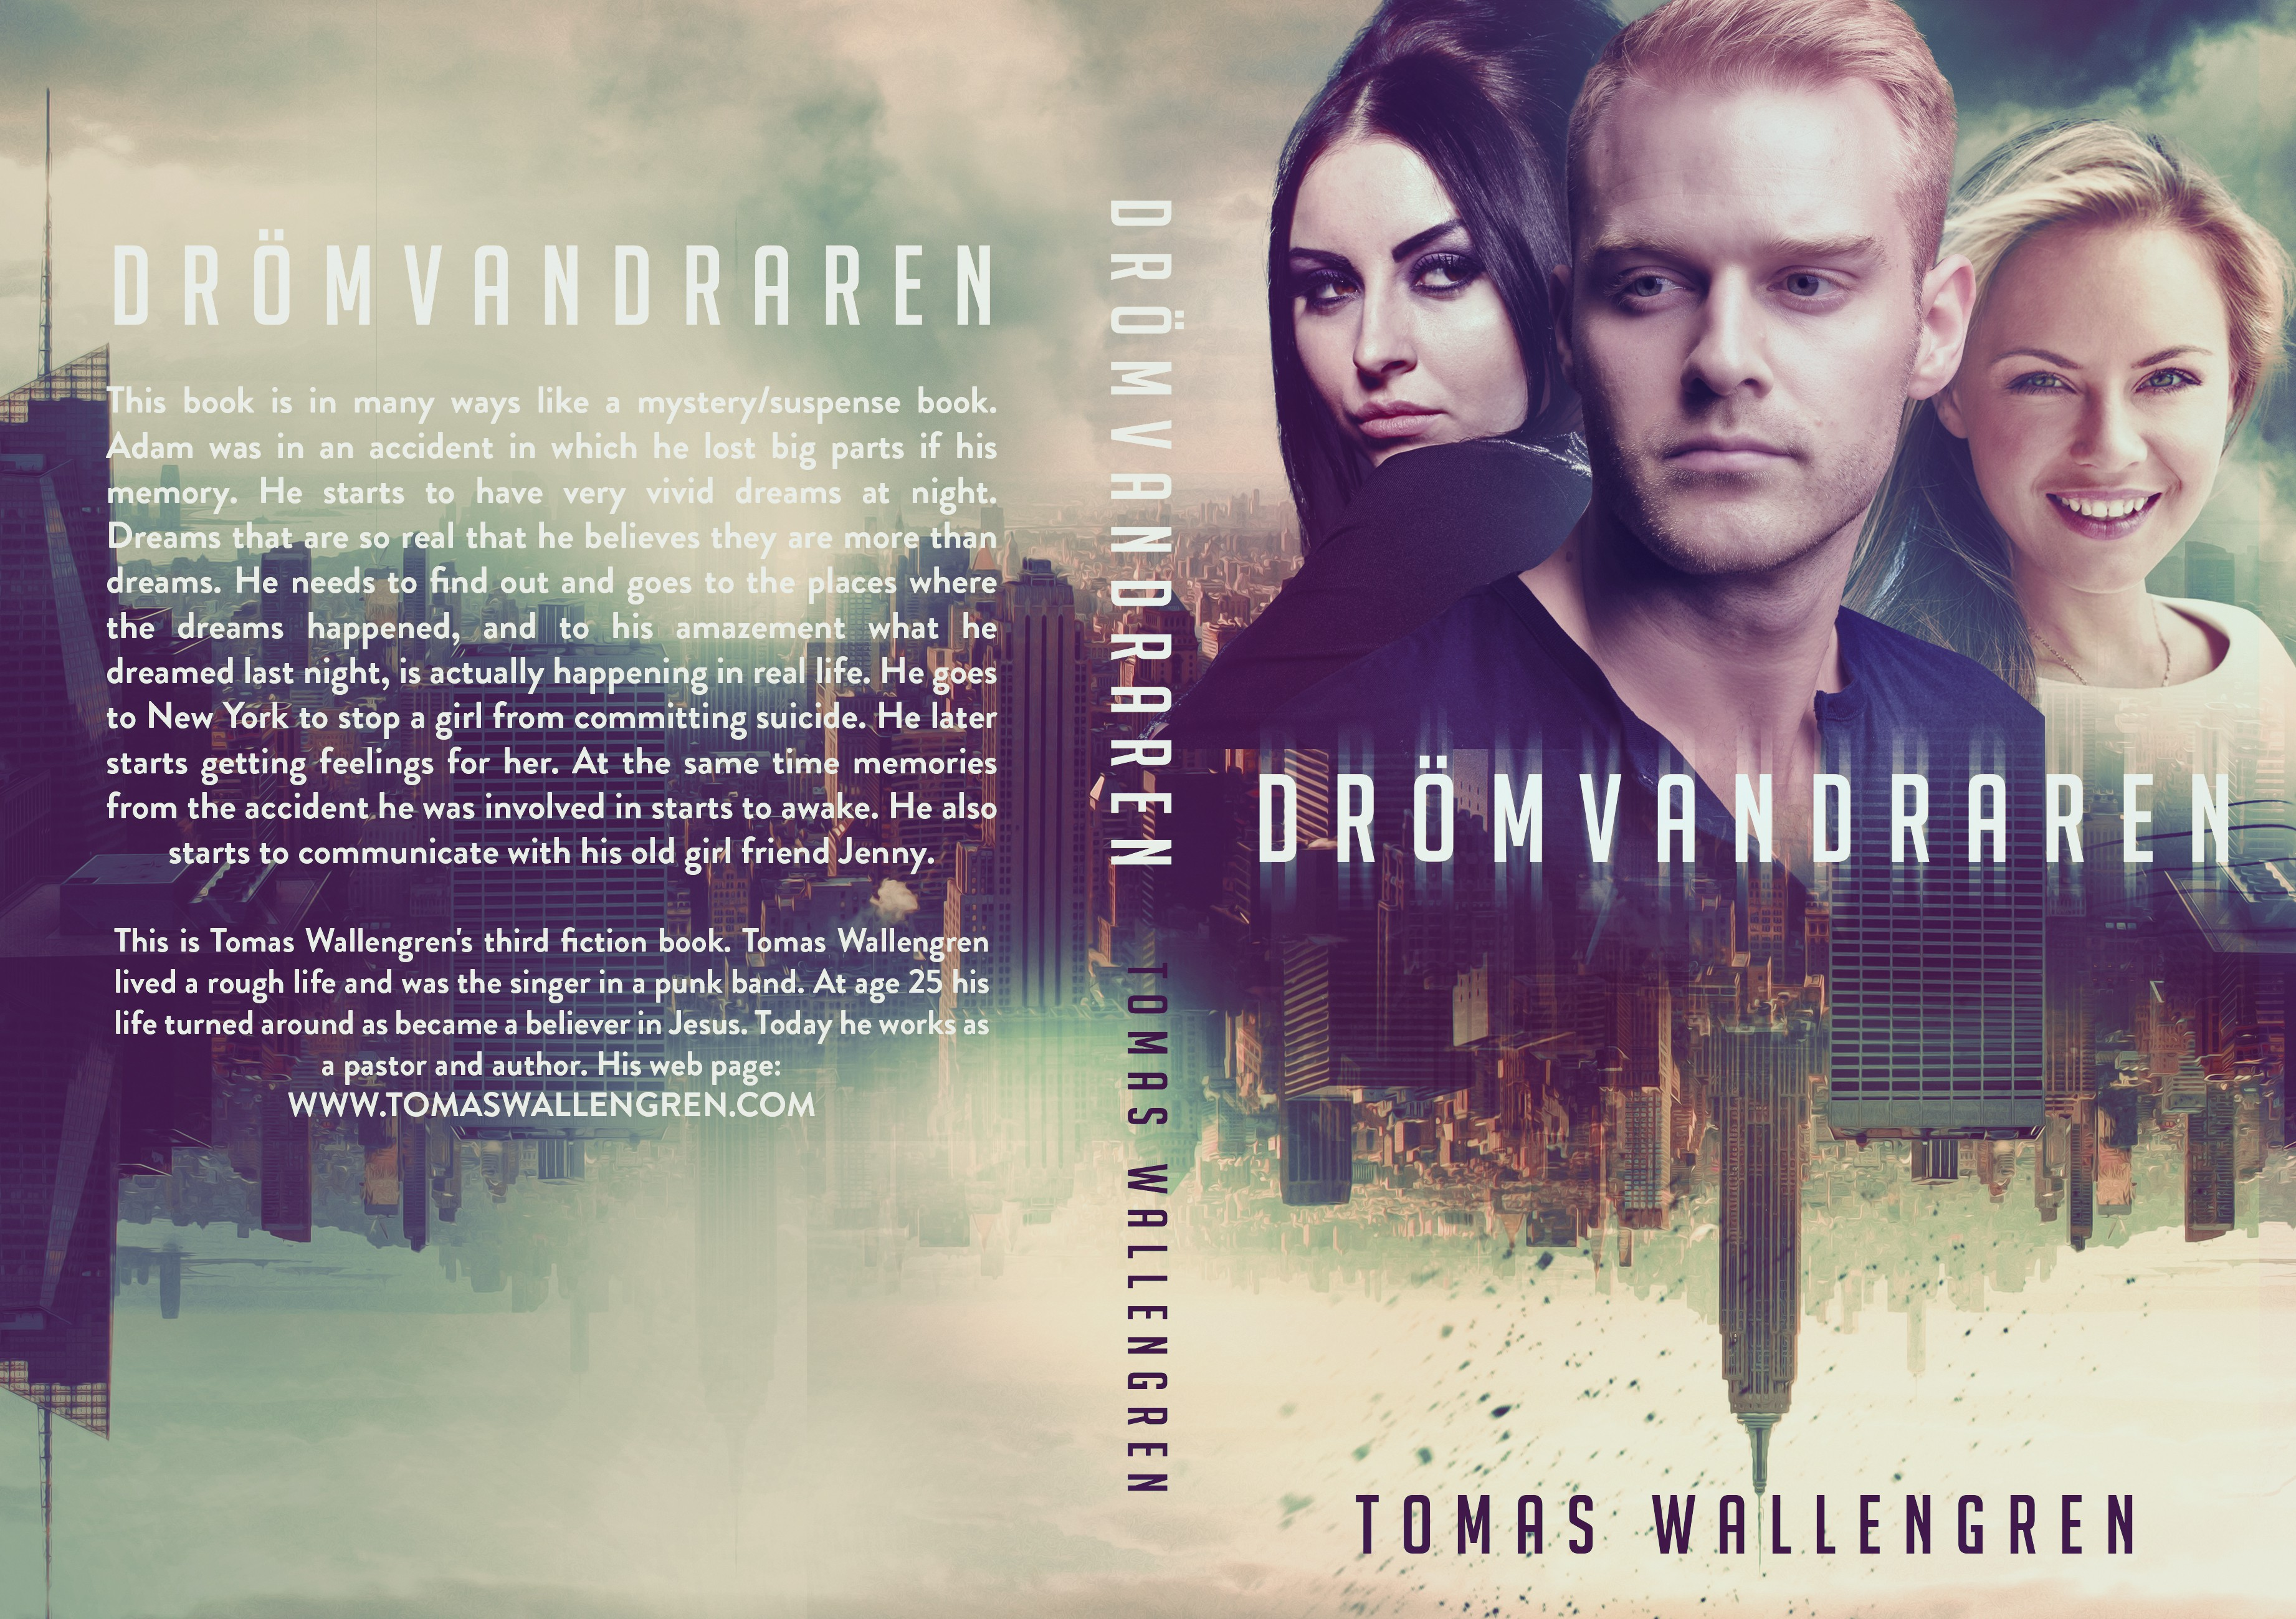 Create a captivating cover for the mystery suspense title The Dreamwalker